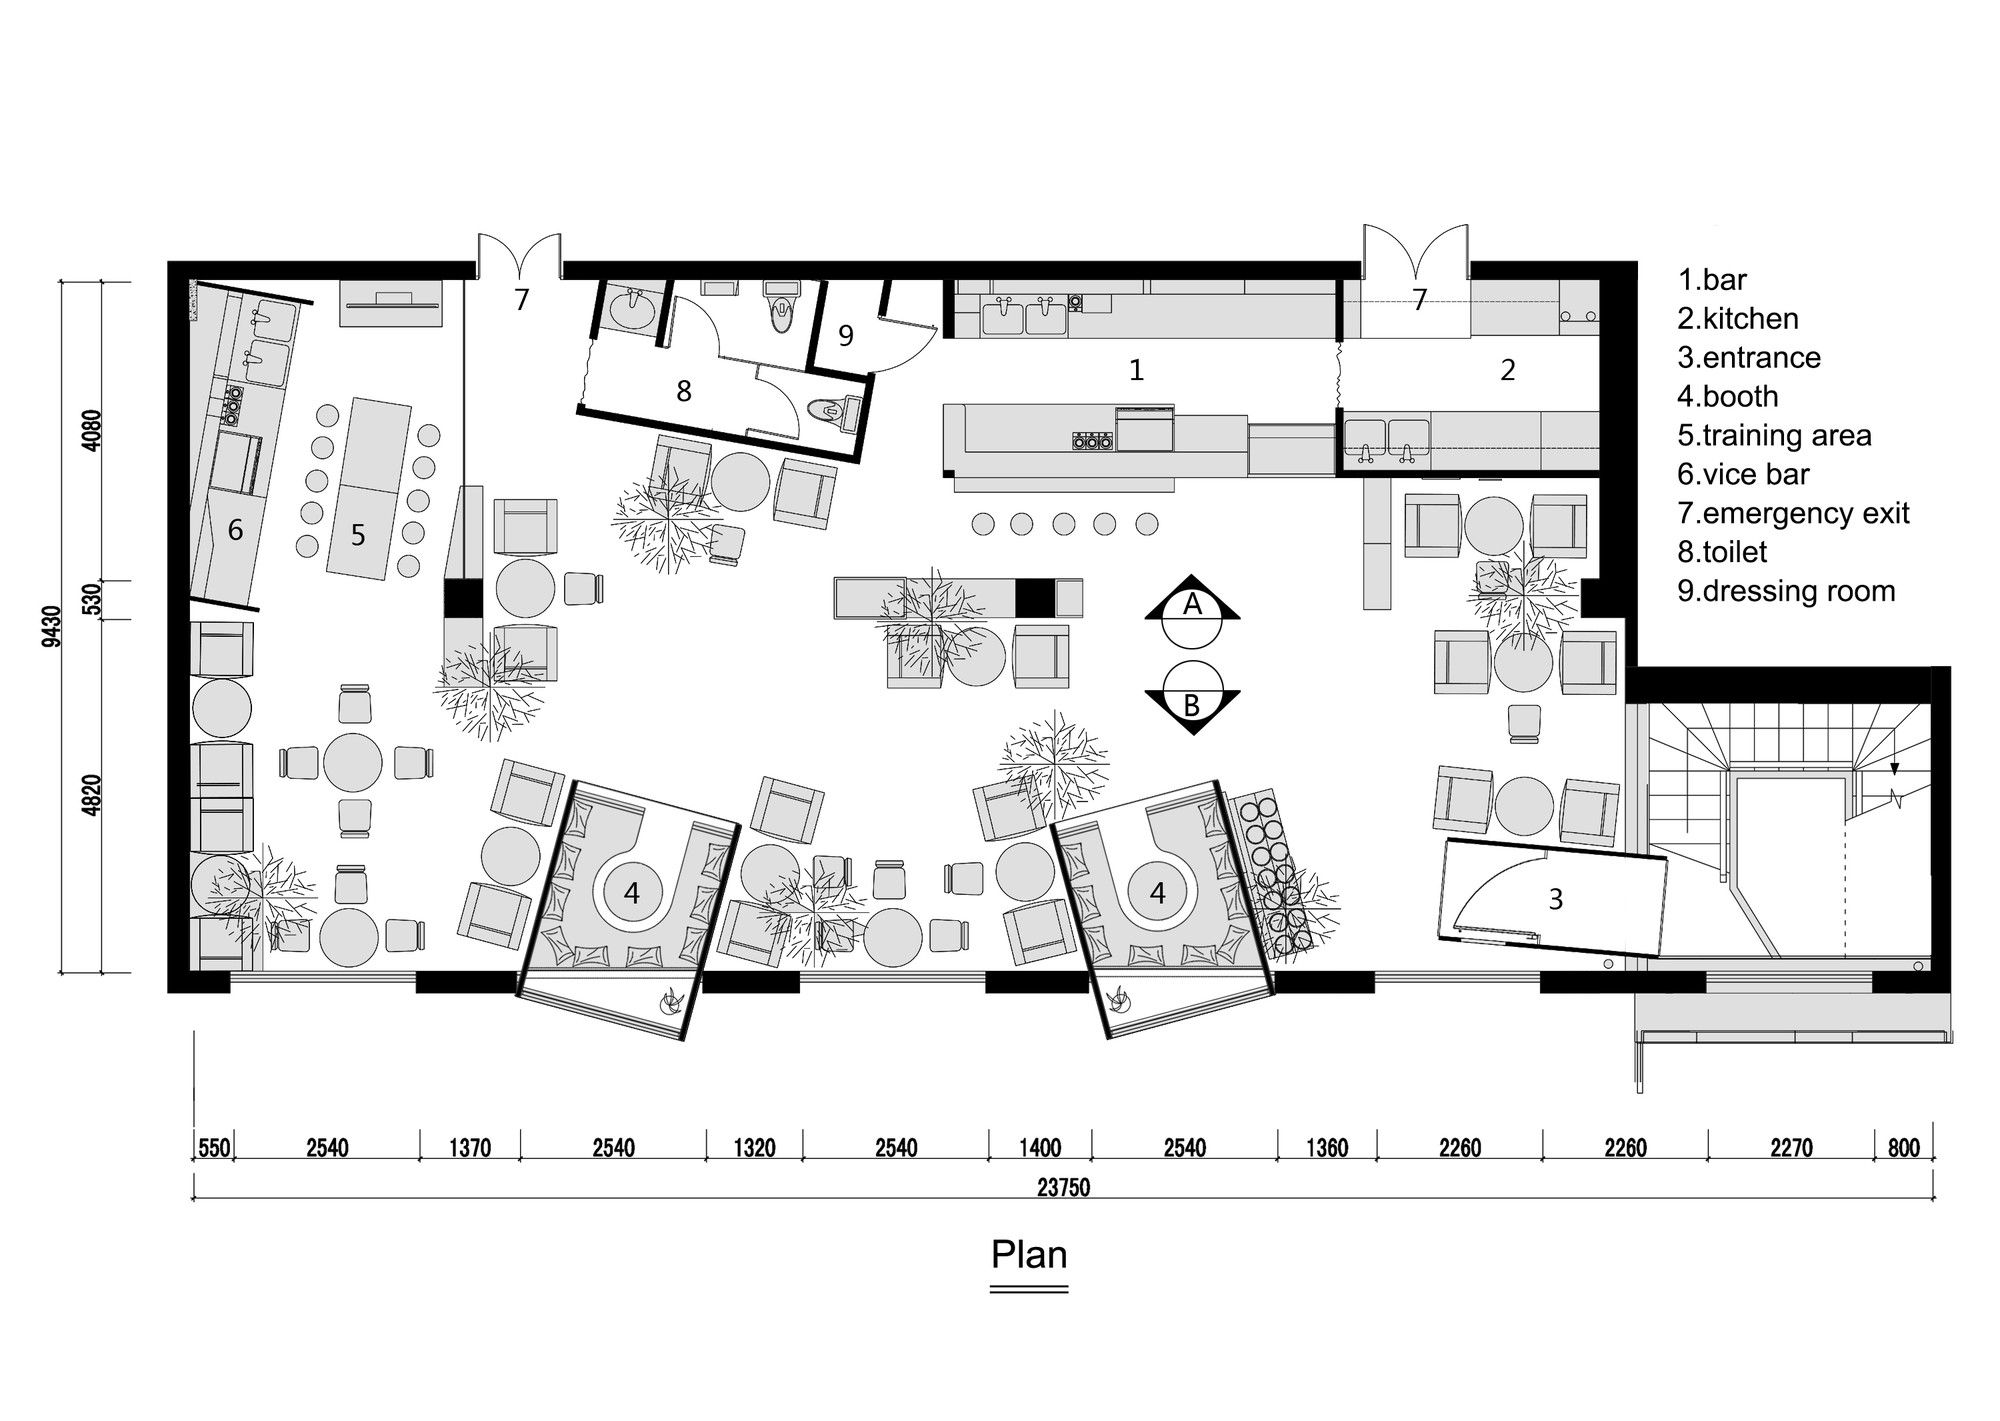 Kale caf yamo design design floor plans kale and for Shop plans and designs